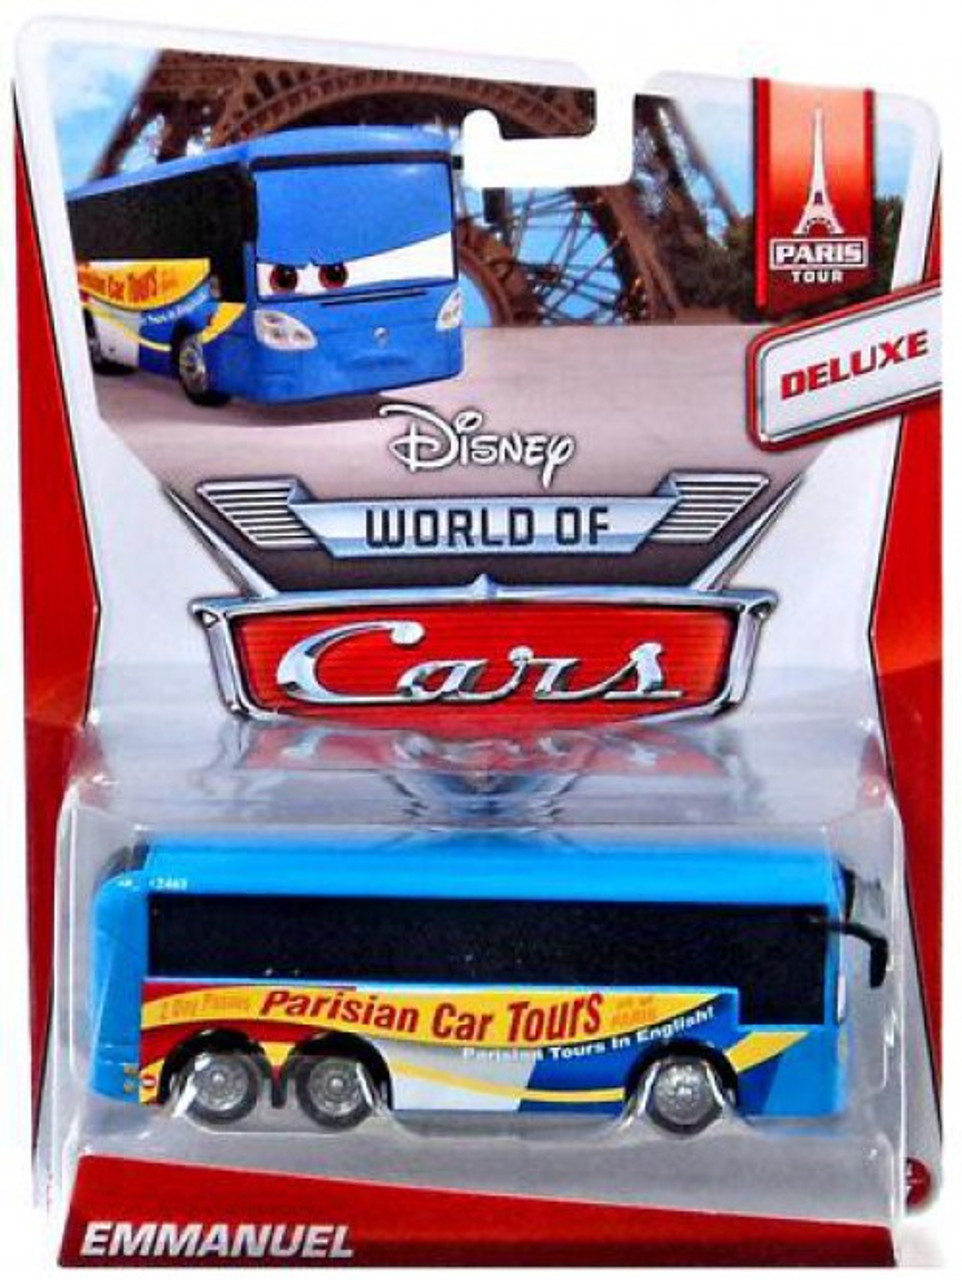 Disney Cars The World of Cars Series 2 Emmanuel Diecast Car #3/7